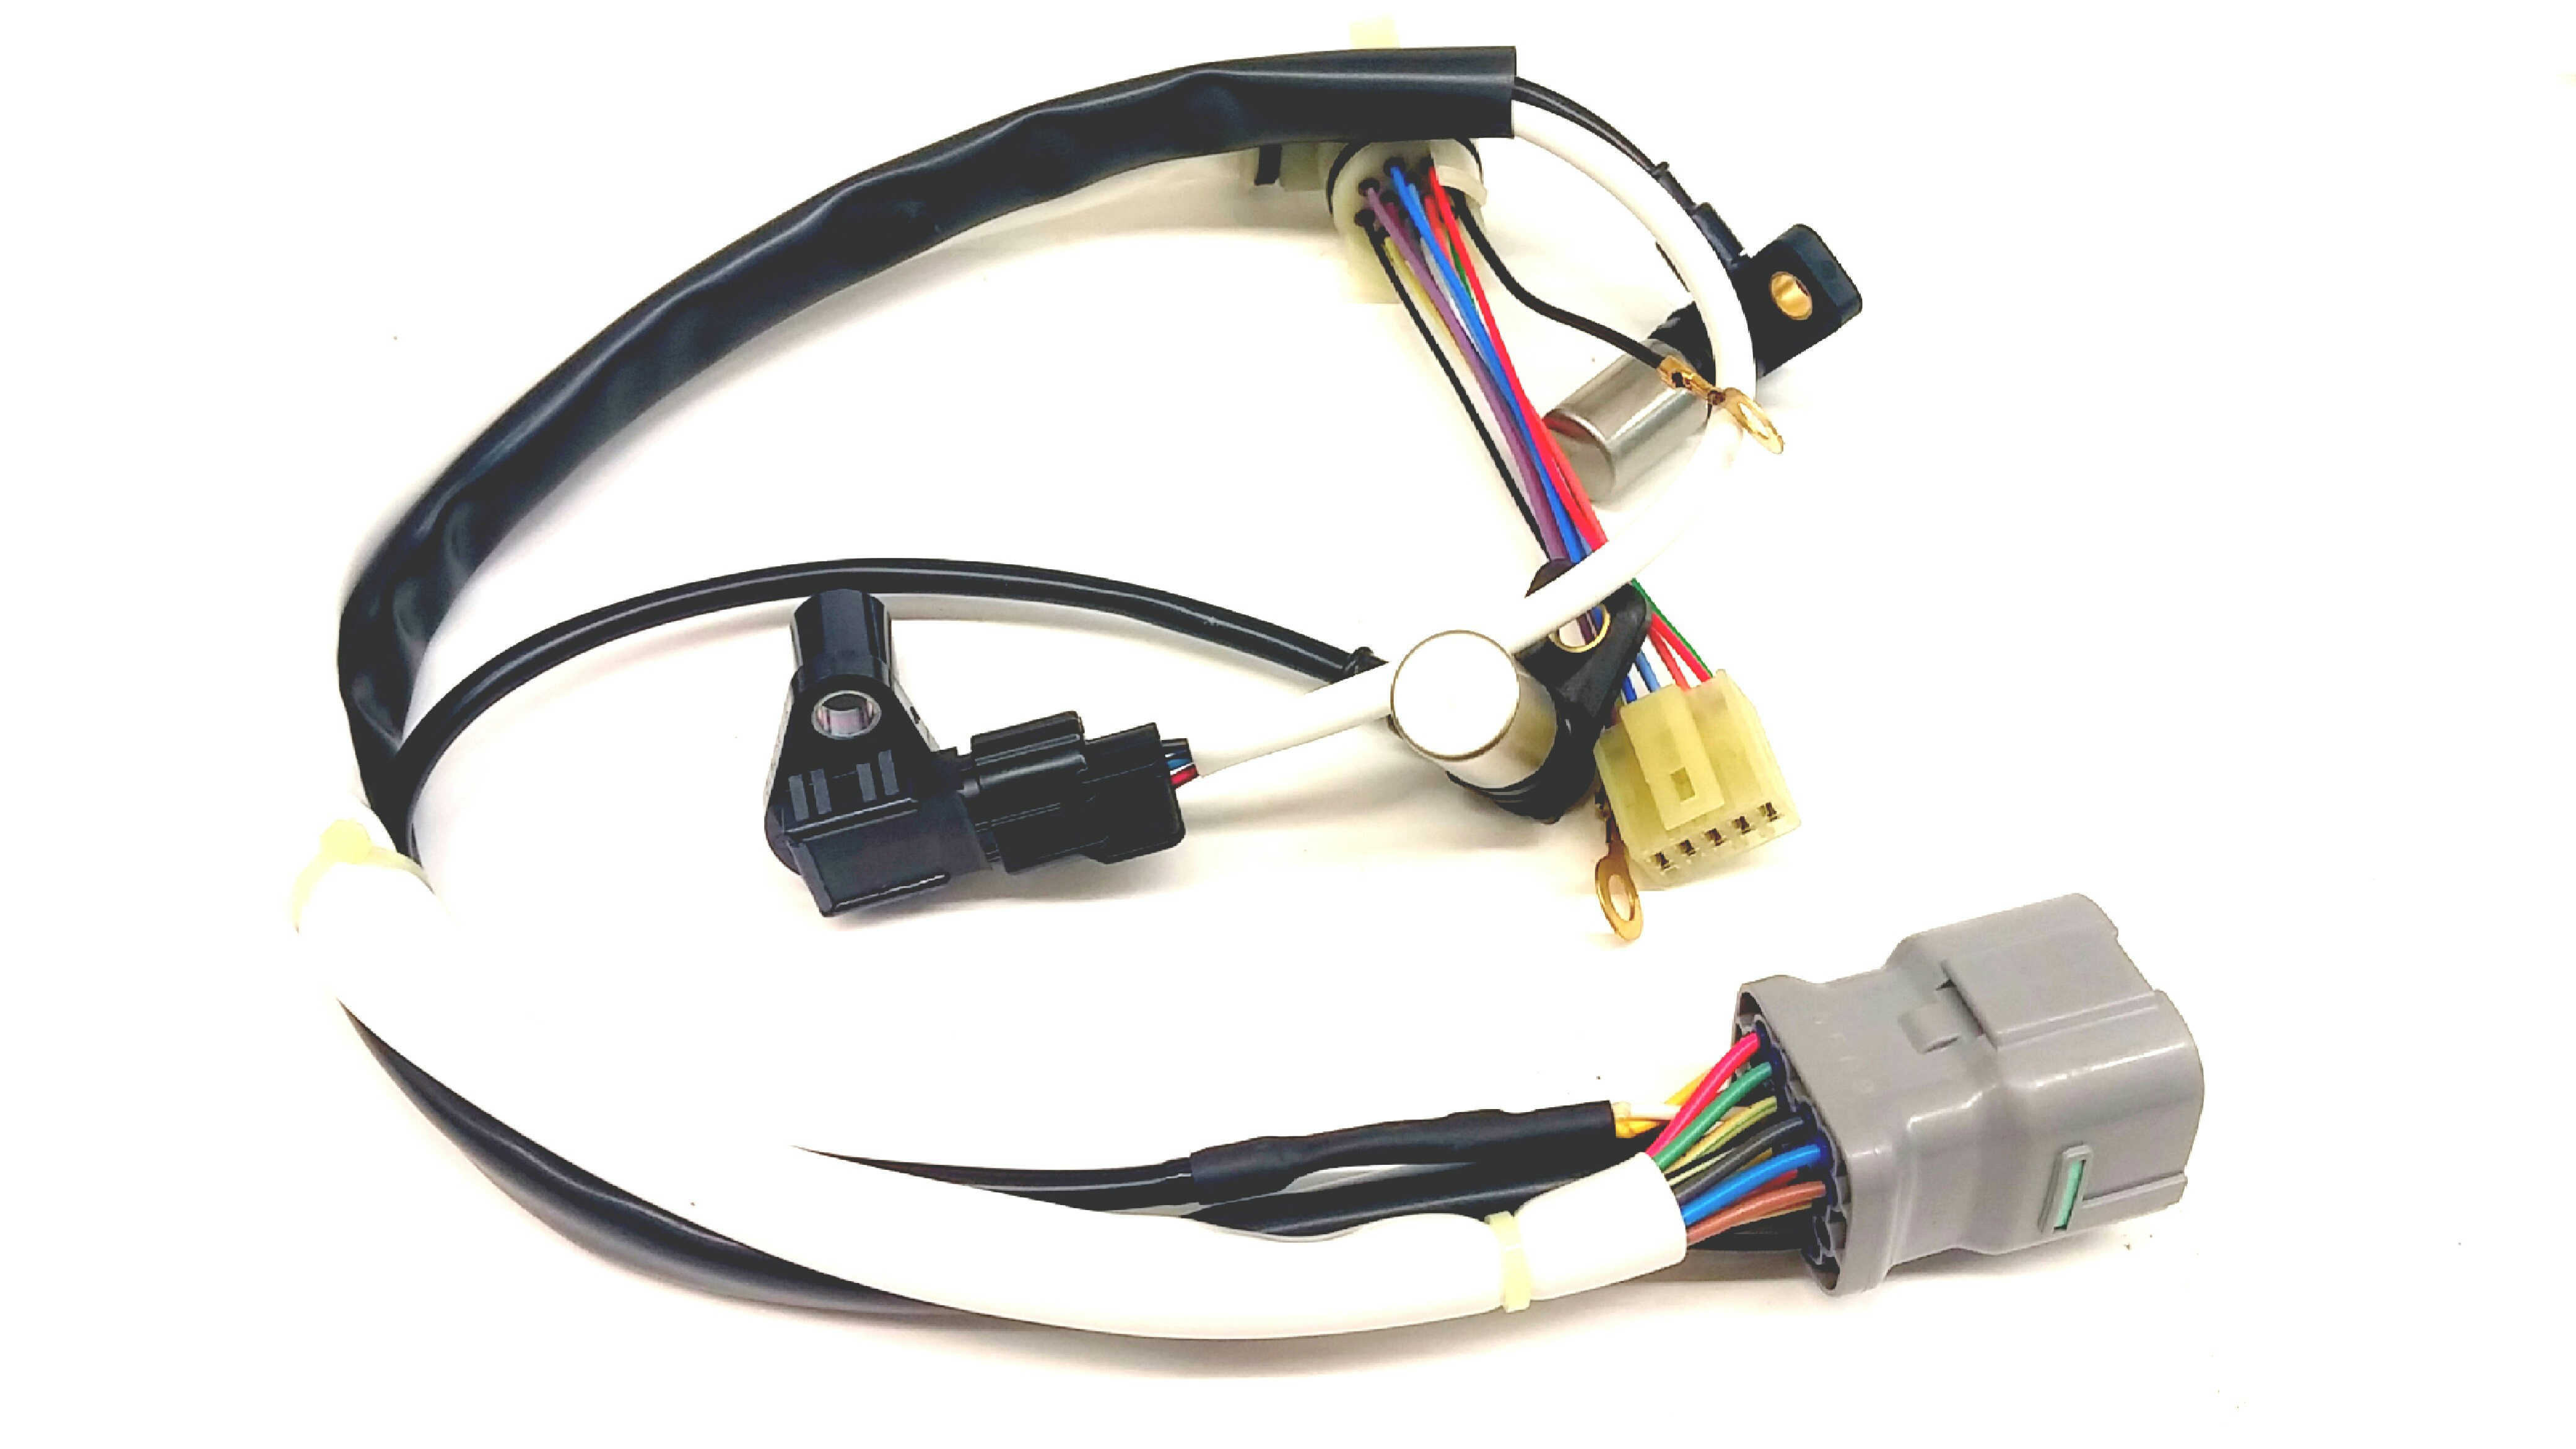 2009 Subaru Forester Sensor and harness assembly ...